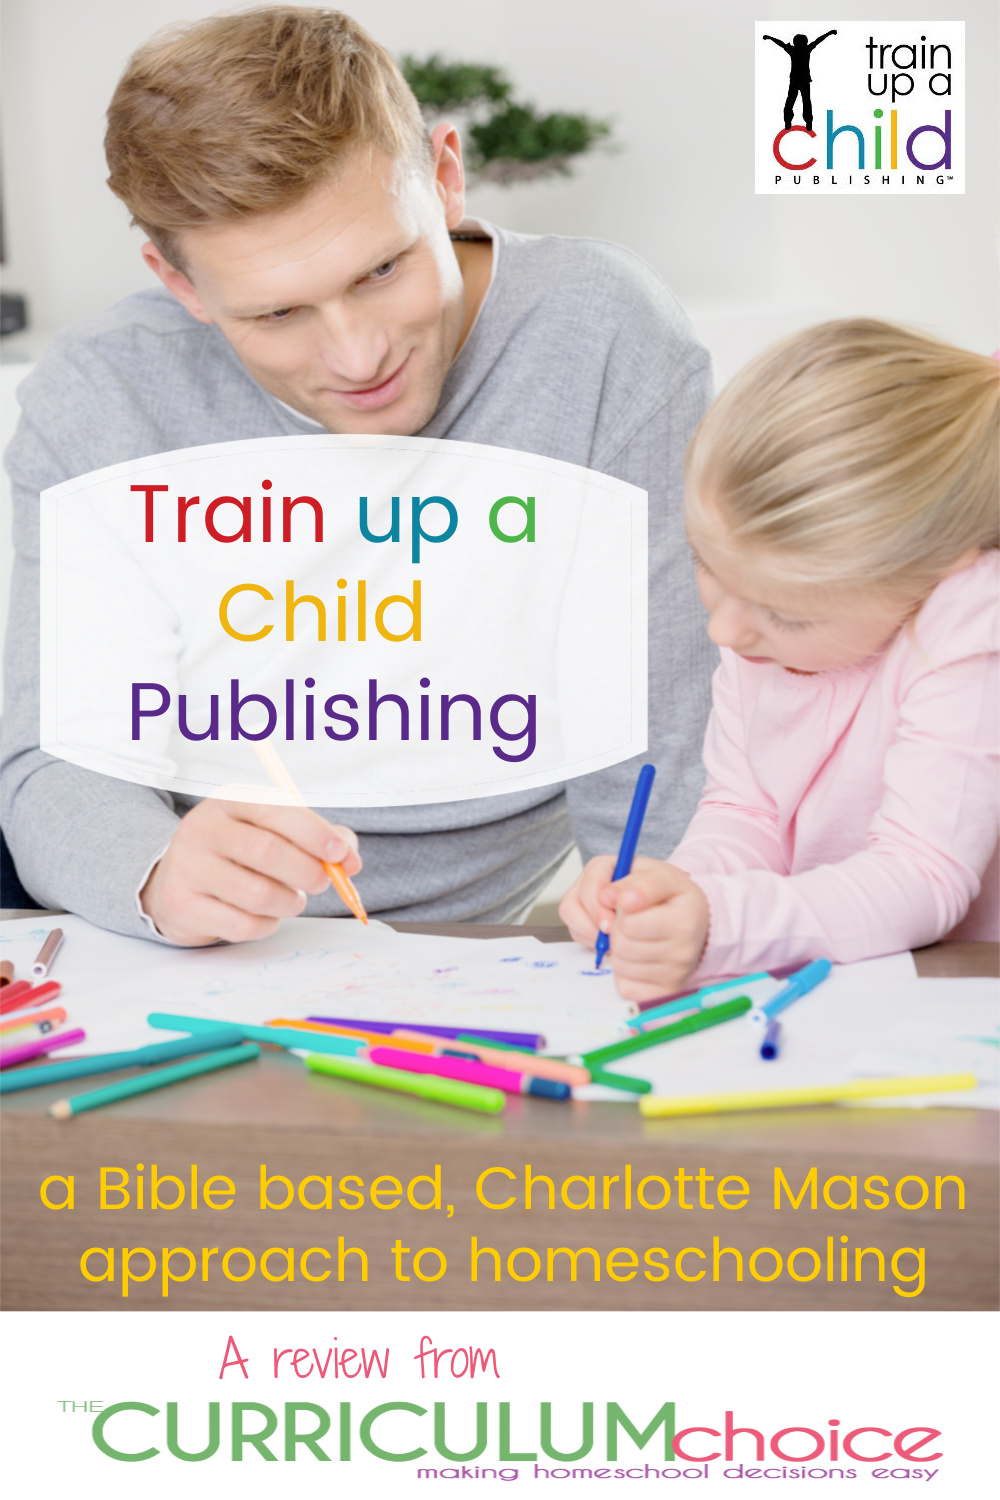 Train up a Child Publishing is literature based Charlotte Mason approach to homeschooling using the Bible and great children's literature to teach Bible, History/Reading, Science, Language Arts, and Fine Arts together in one educational plan. A review from The Curriculum Choice.